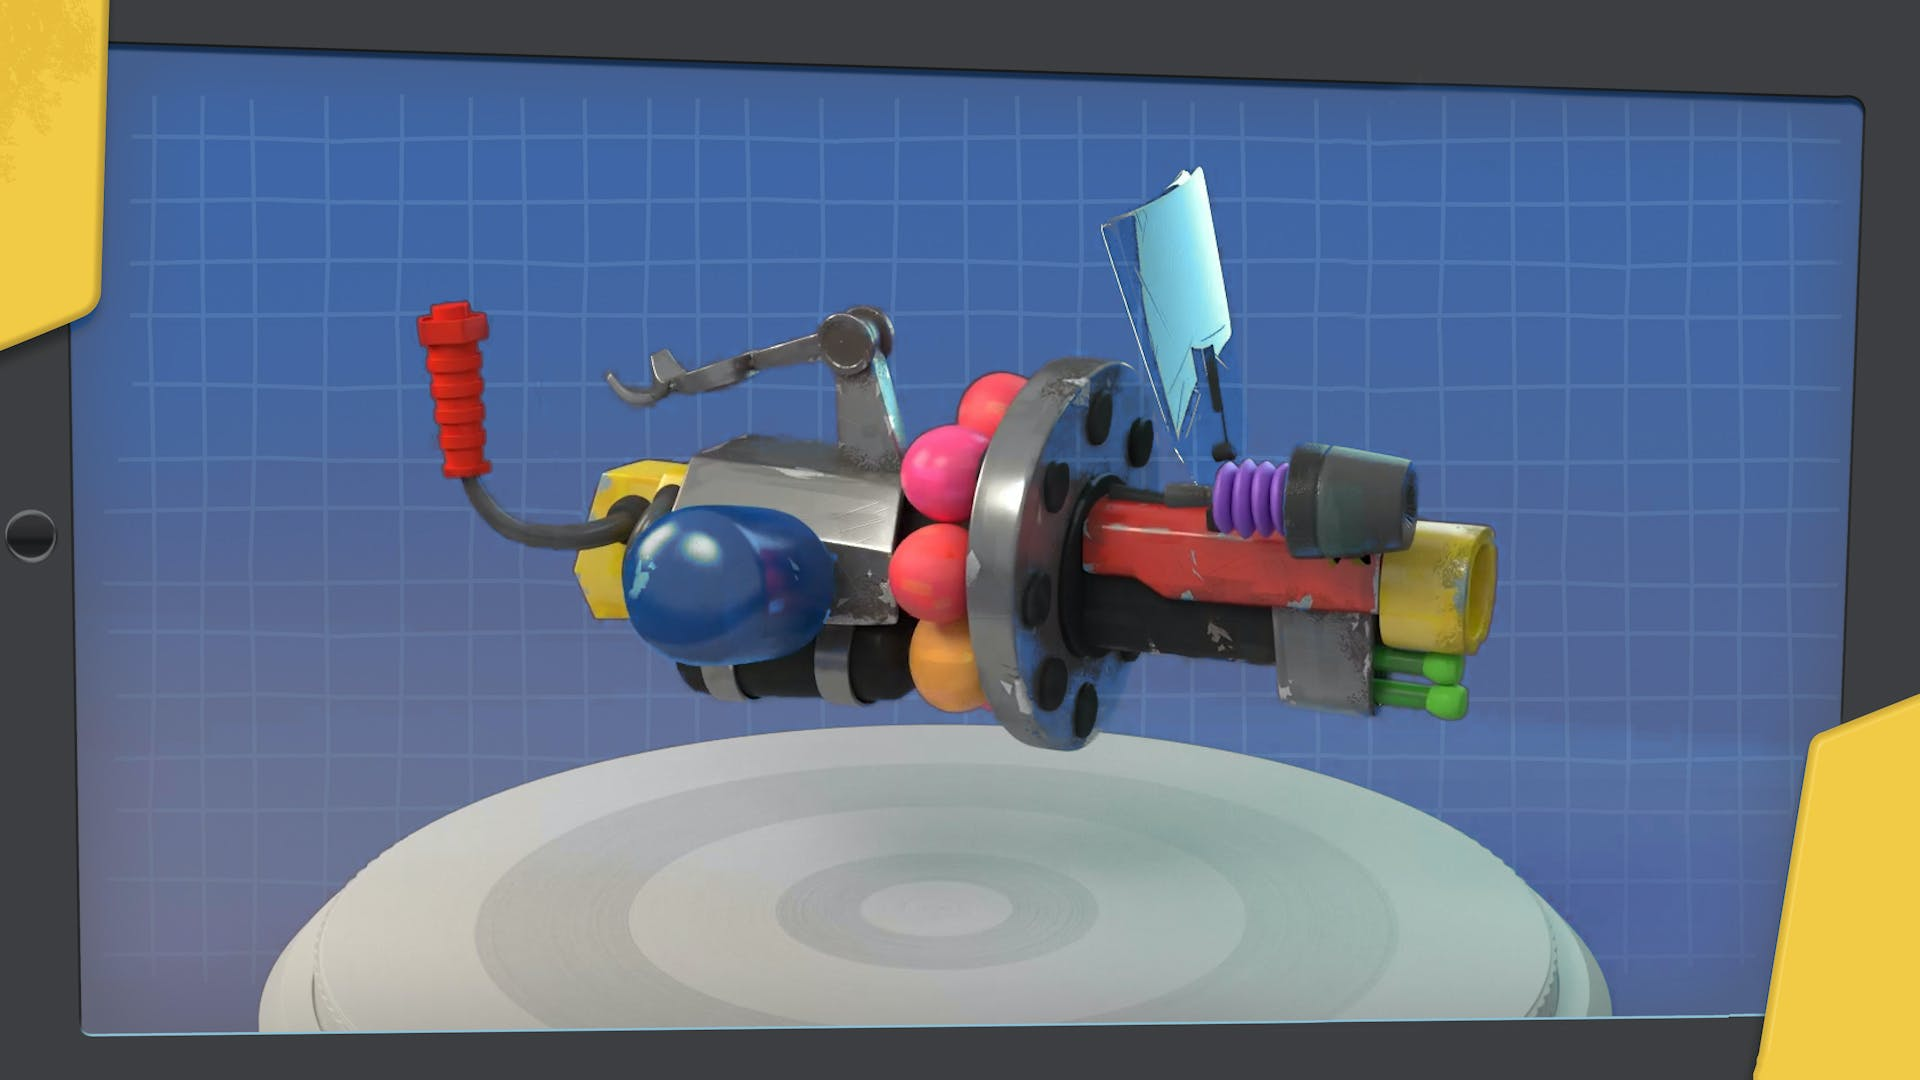 The gang's launcher